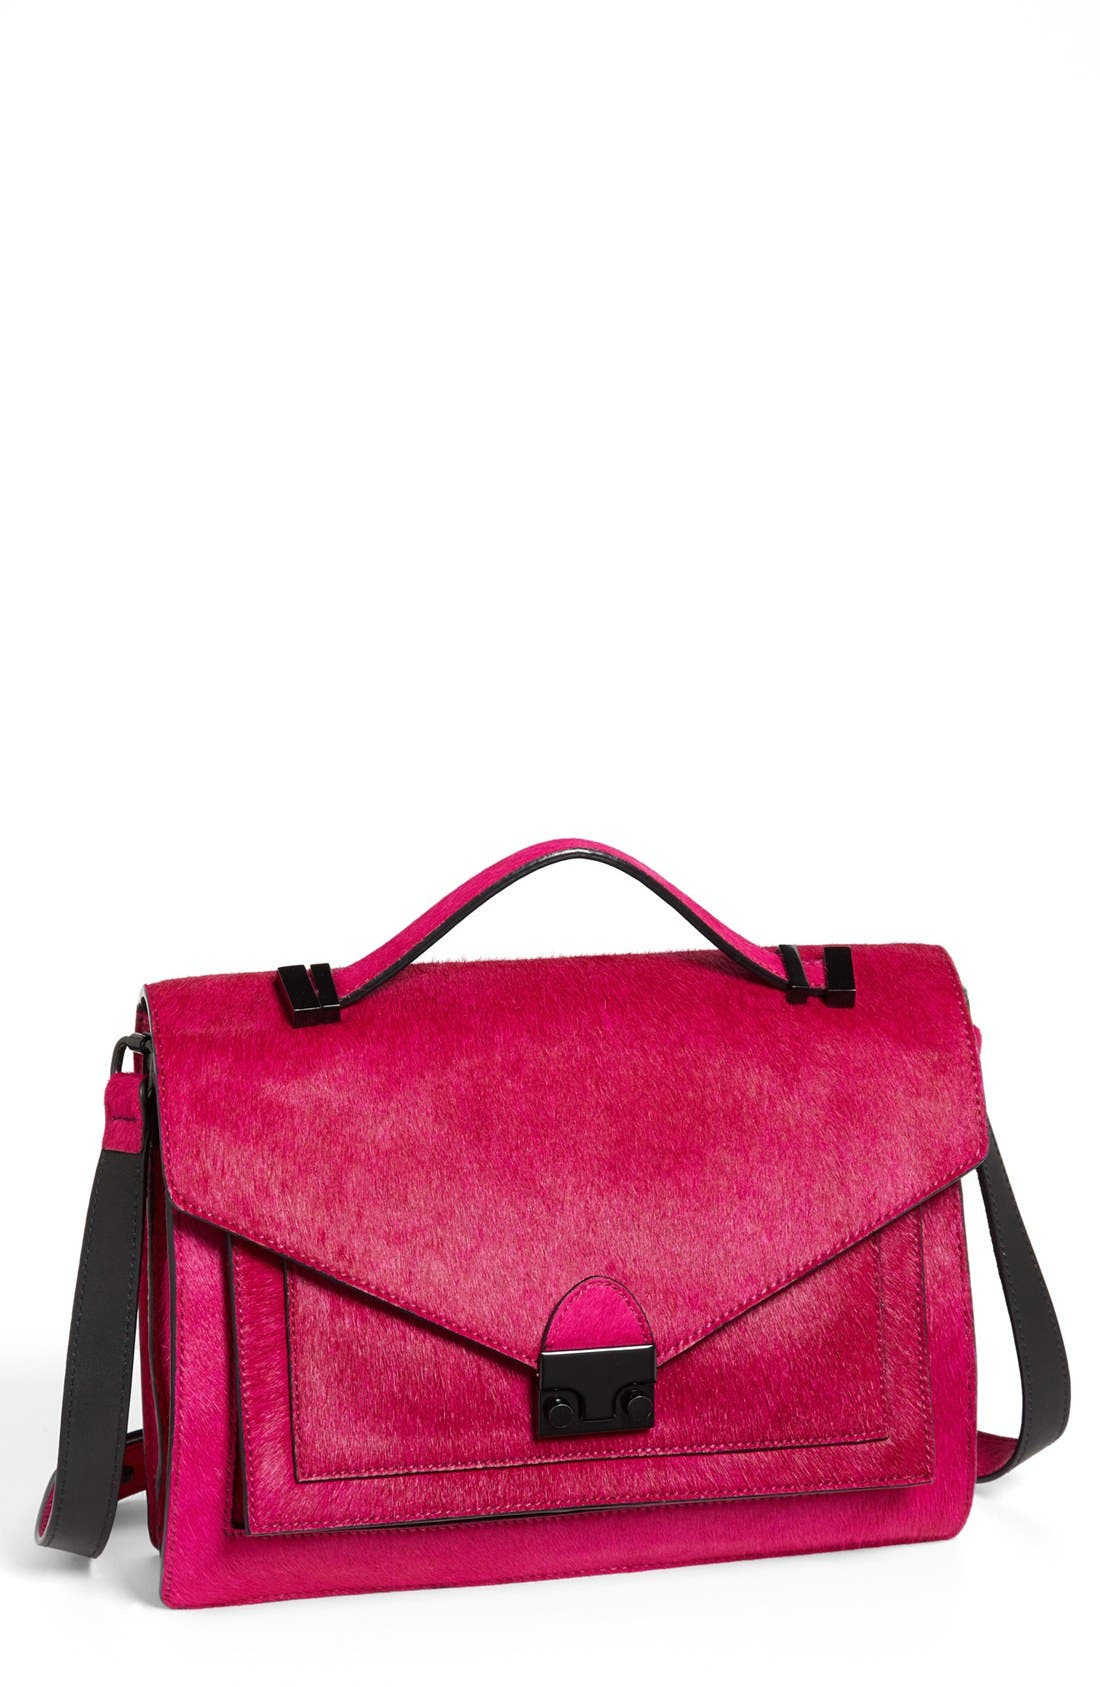 Main Image - Loeffler Randall 'Rider' Calf Hair & Leather Satchel, Medium